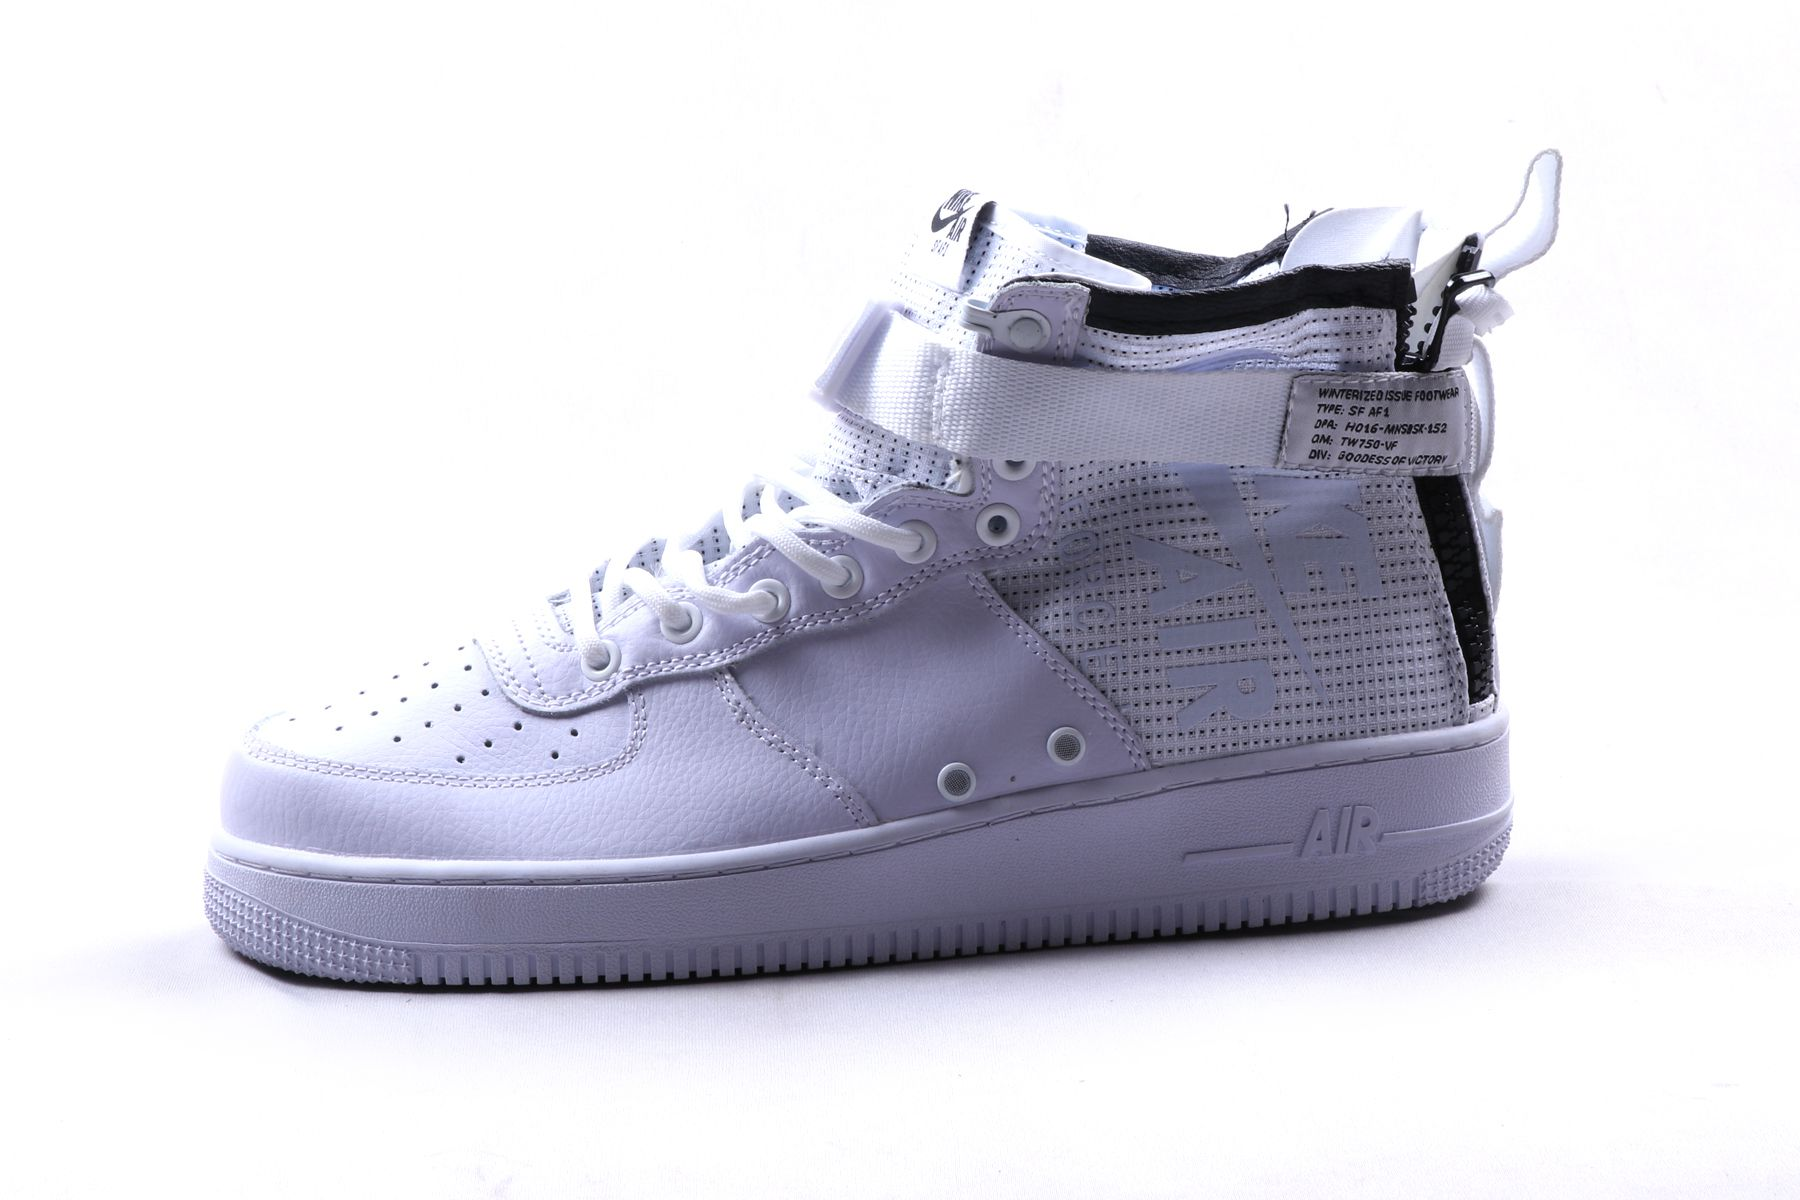 timeless design bf546 f9211 Nike 1 SF AIR FORCE 1 MID White Sneakers White Casual Shoes - Buy Nike 1 SF  AIR FORCE 1 MID White Sneakers White Casual Shoes Online at Best Prices in  India ...